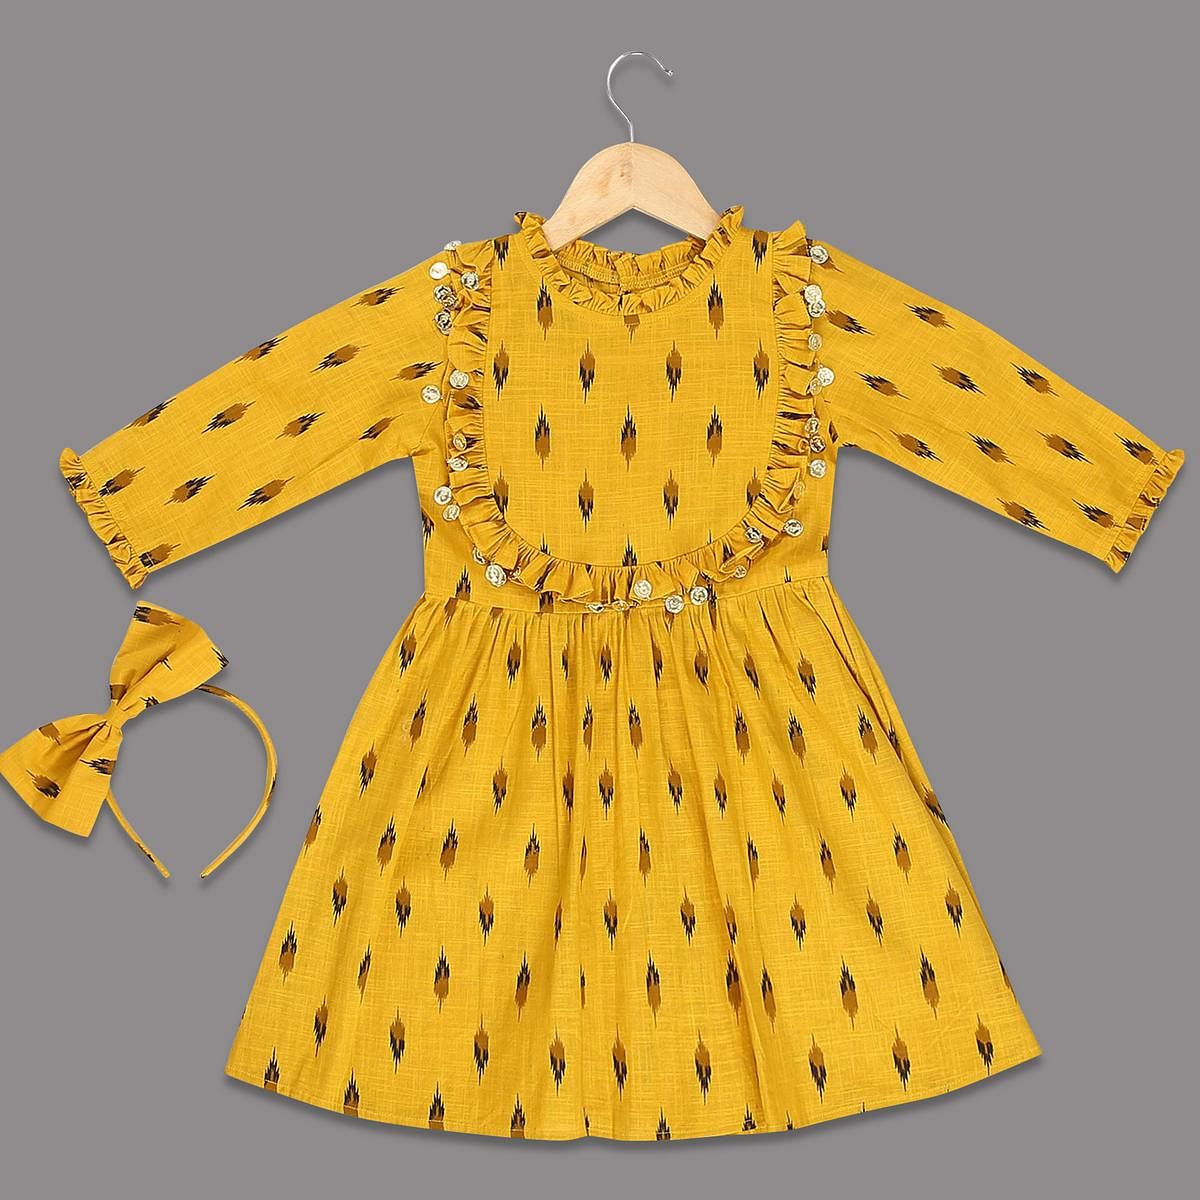 Captivating Yellow Colored Printed Long Sleeves Cotton Frock